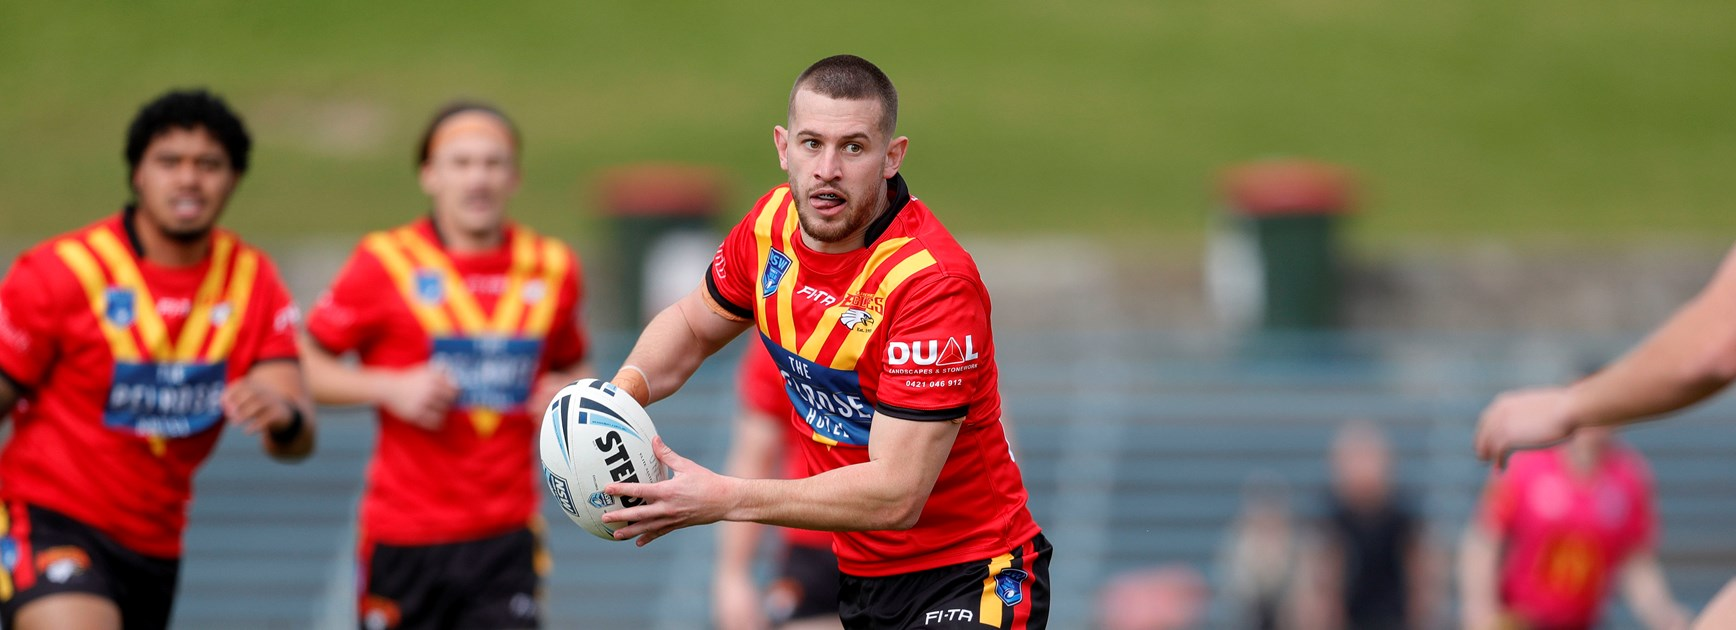 Sydney Shield Rd 6 | Eagles soar to thumping win over Bulls